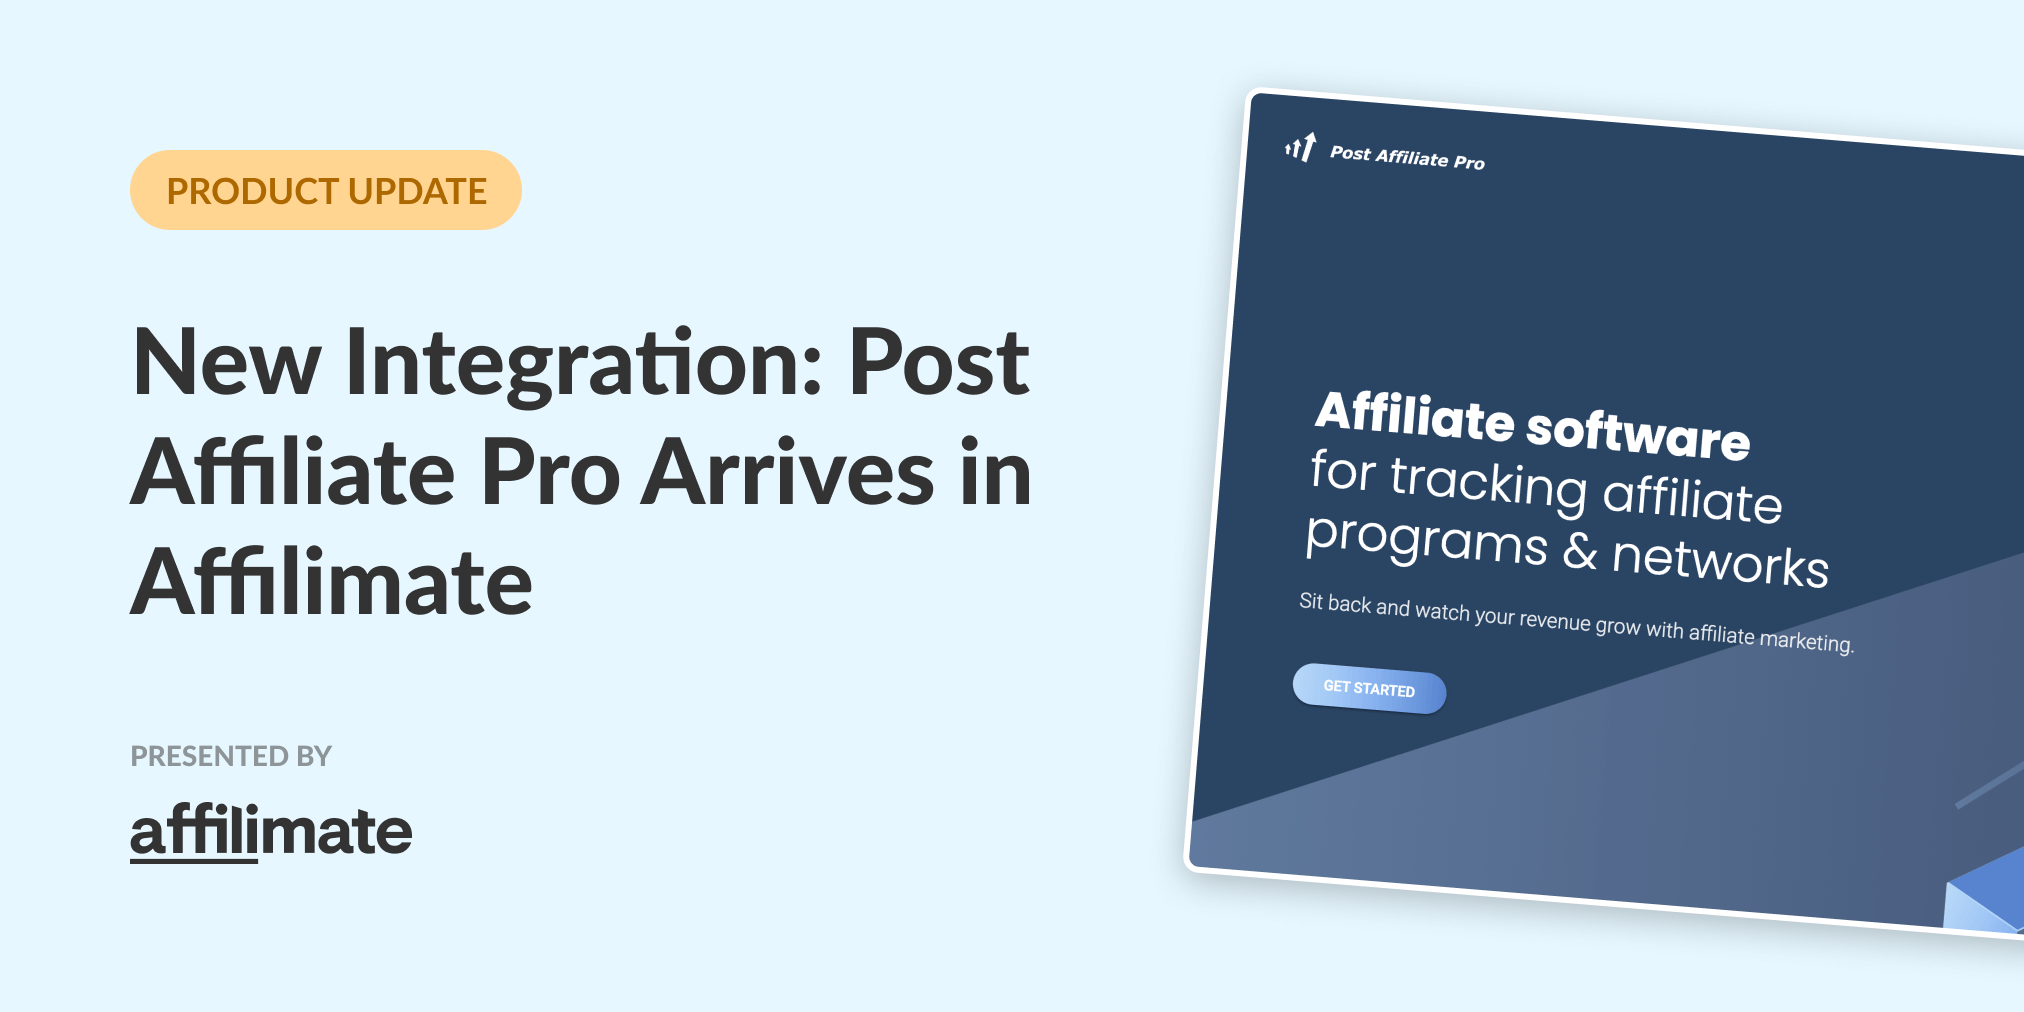 New Integration: Post Affiliate Pro Arrives in Affilimate